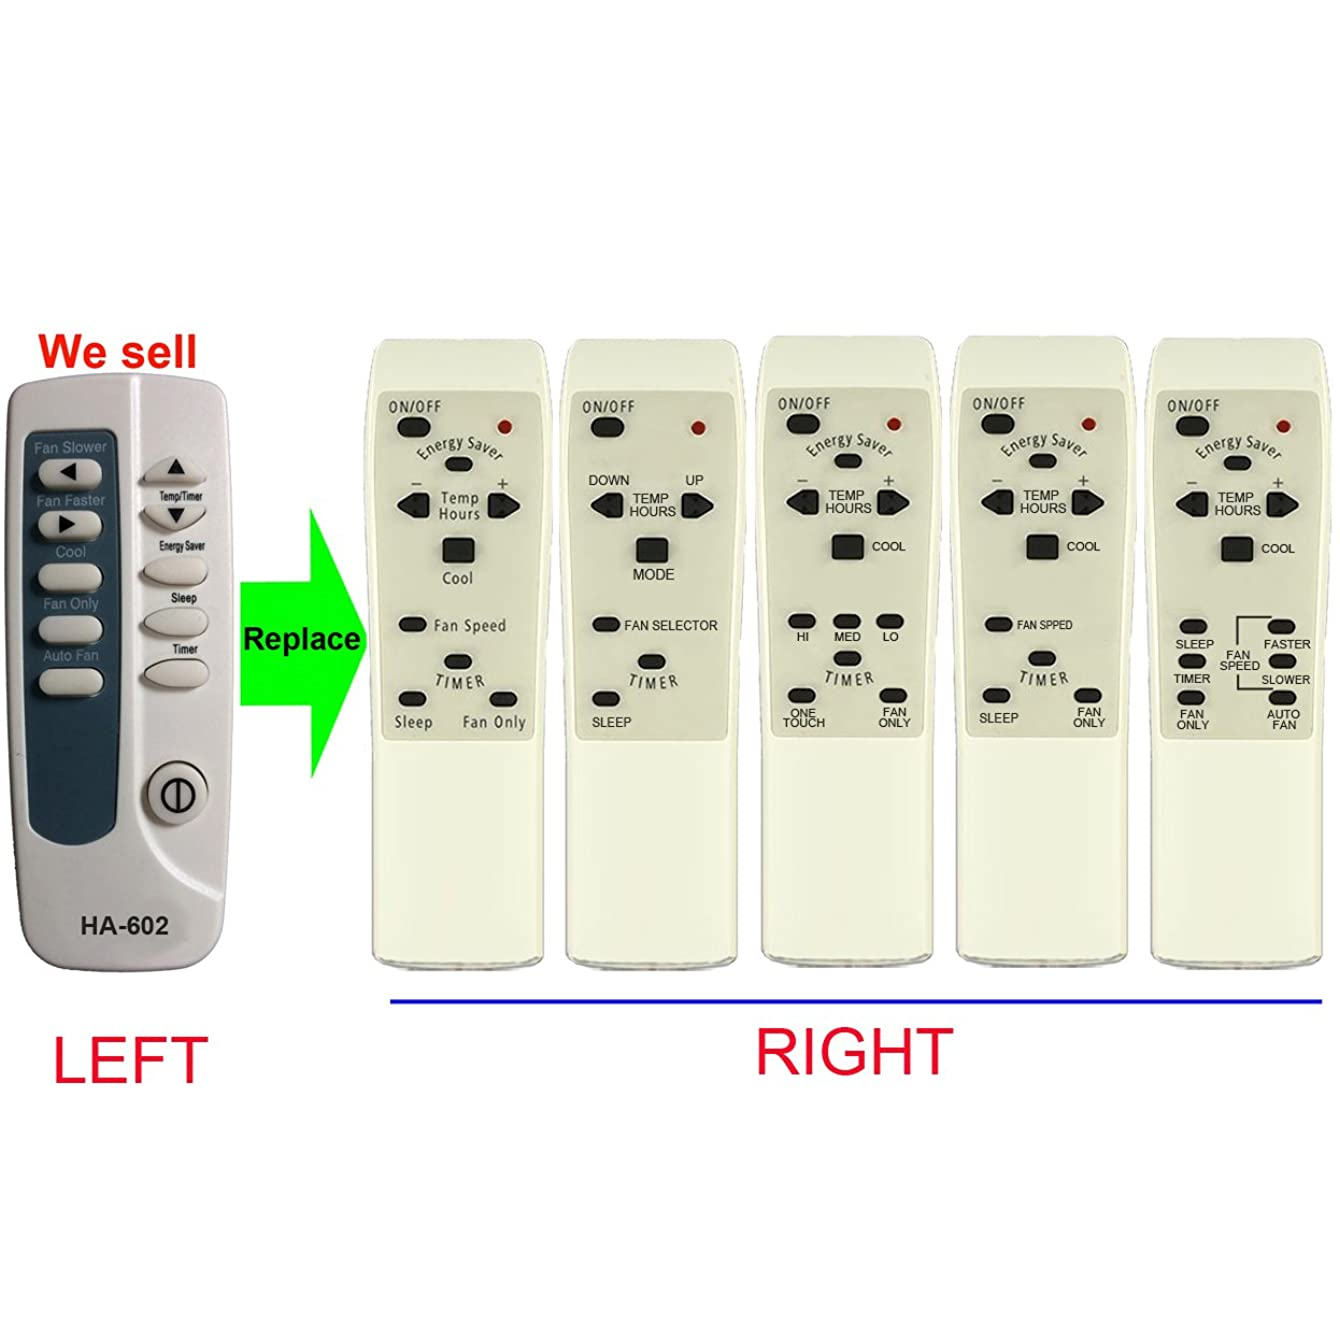 HA-602 Replacement for kenmore Air Conditioner Remote Control 309342608 works for 253.73055300 253.73055301 253.73125301 253.73156301 253.73185300 253.73229 253.73229300 253.73229301 253.73259